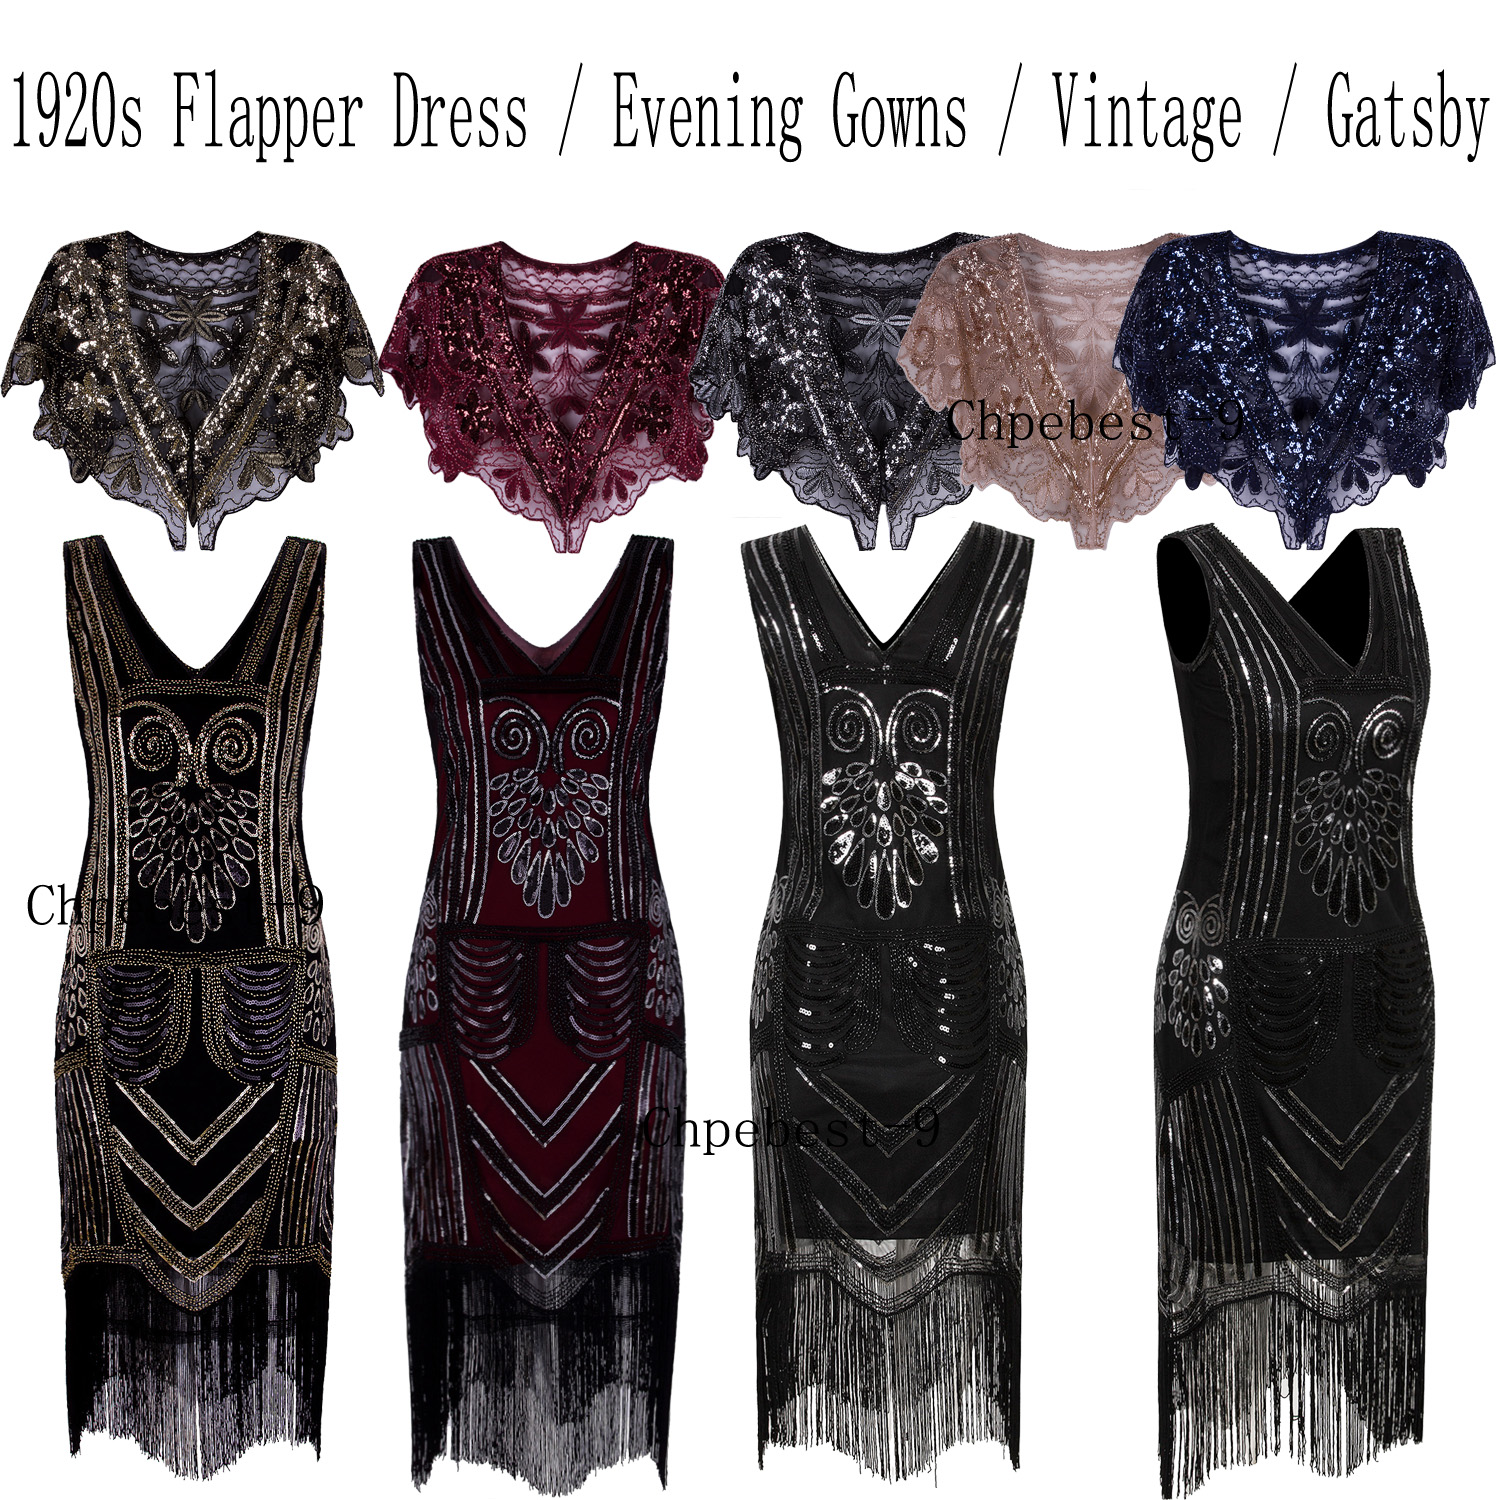 9ad71b8952d7 Evening Bridesmaid Dress Great Gatsby 1920s Flapper Party Prom Gown Dresses  UK Size 4 6 8 10 12 14 16 18